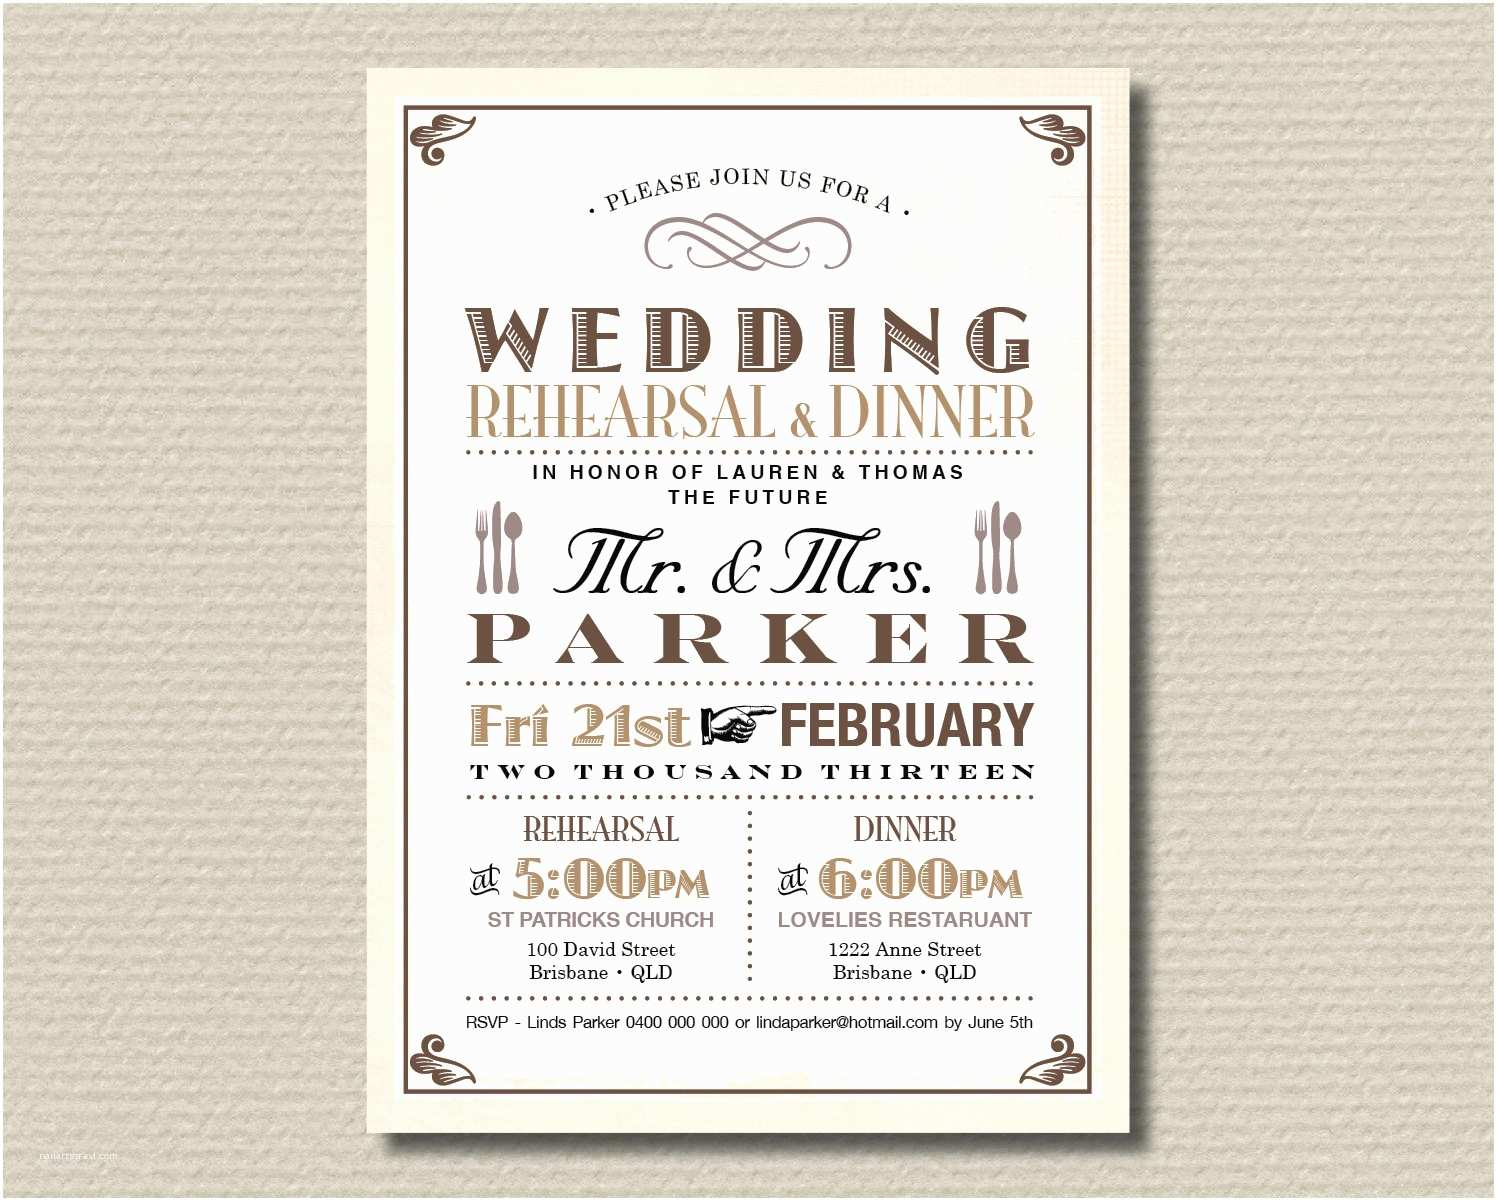 Wedding Rehearsal Dinner Invitation Wording 301 Moved Permanently